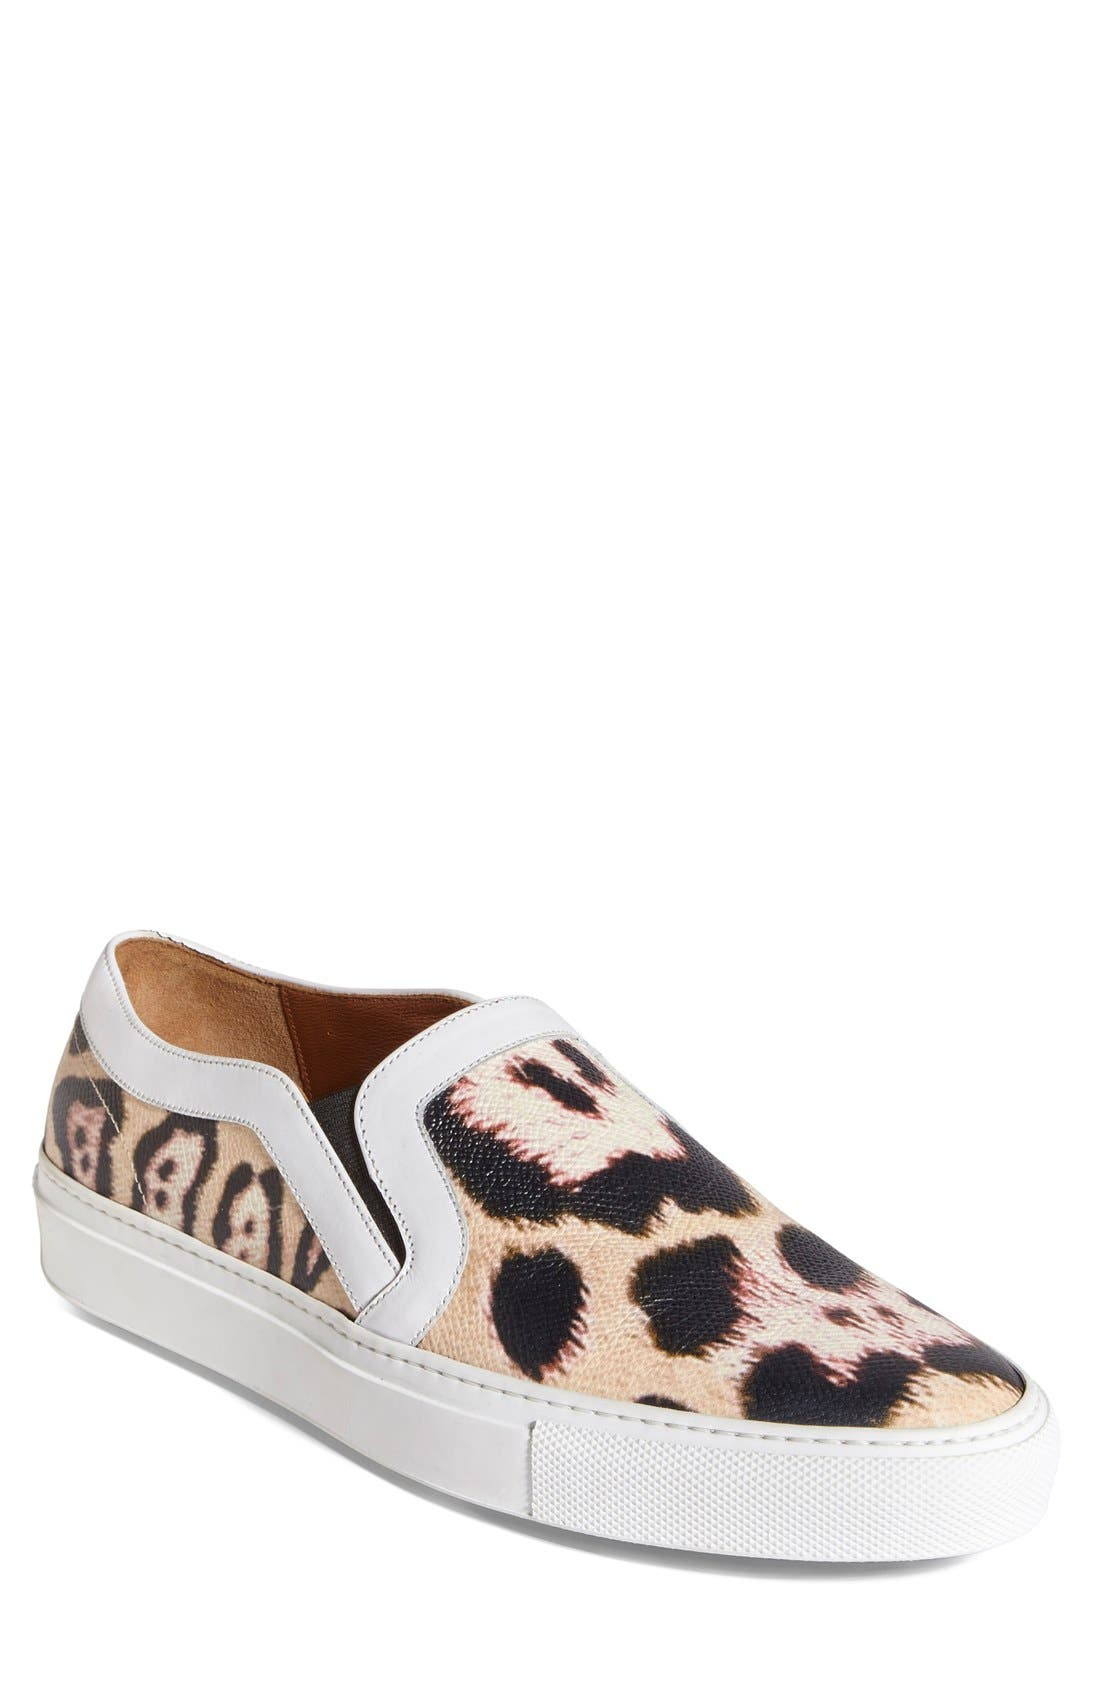 GIVENCHY, Leopard Print Skate Slip-On Sneaker, Main thumbnail 1, color, 200